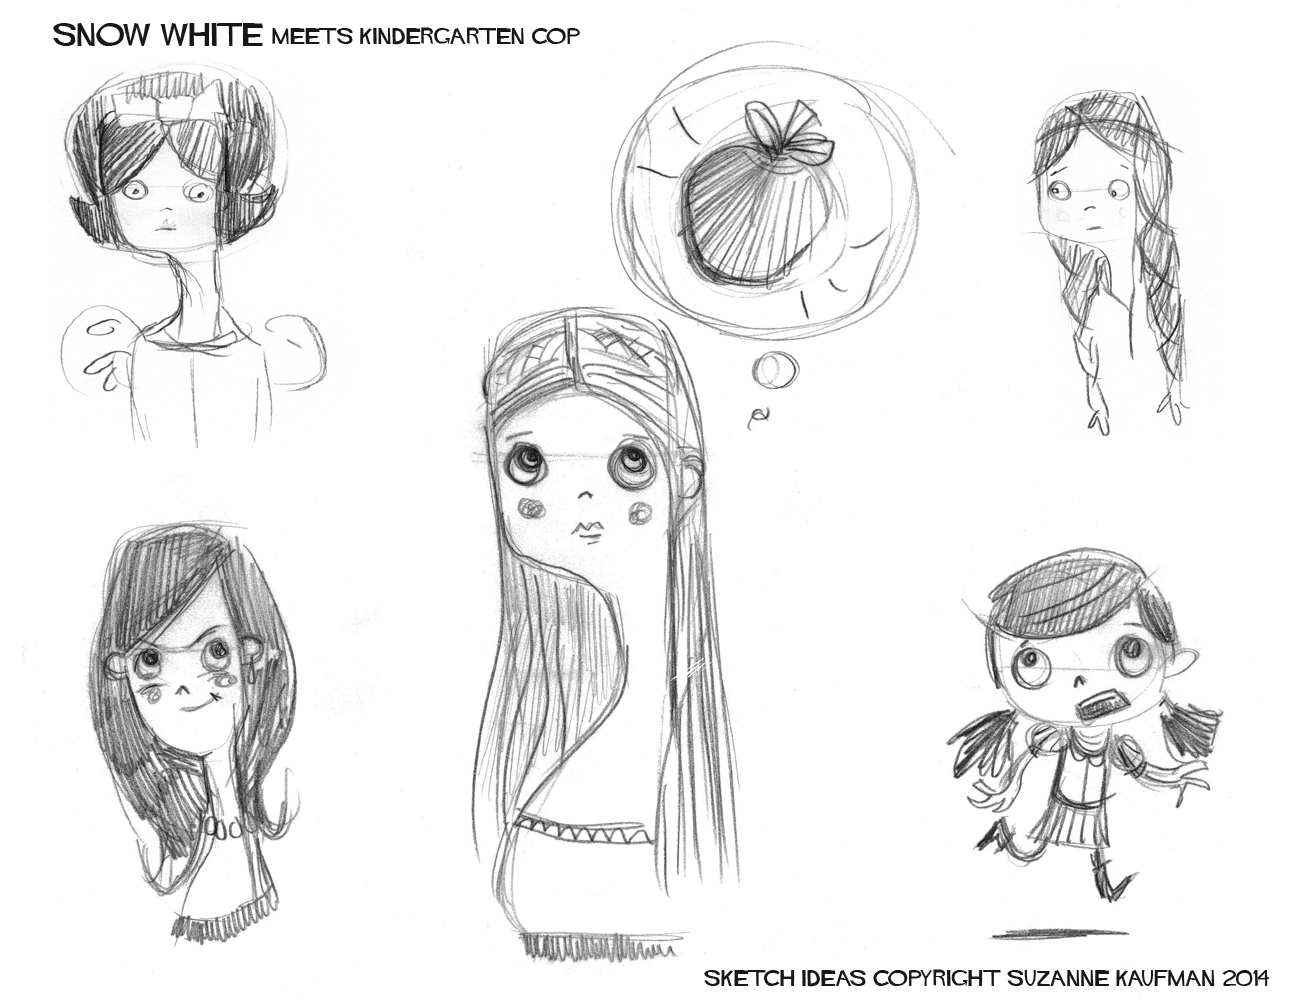 snow_white_character_comp_web_03.jpg